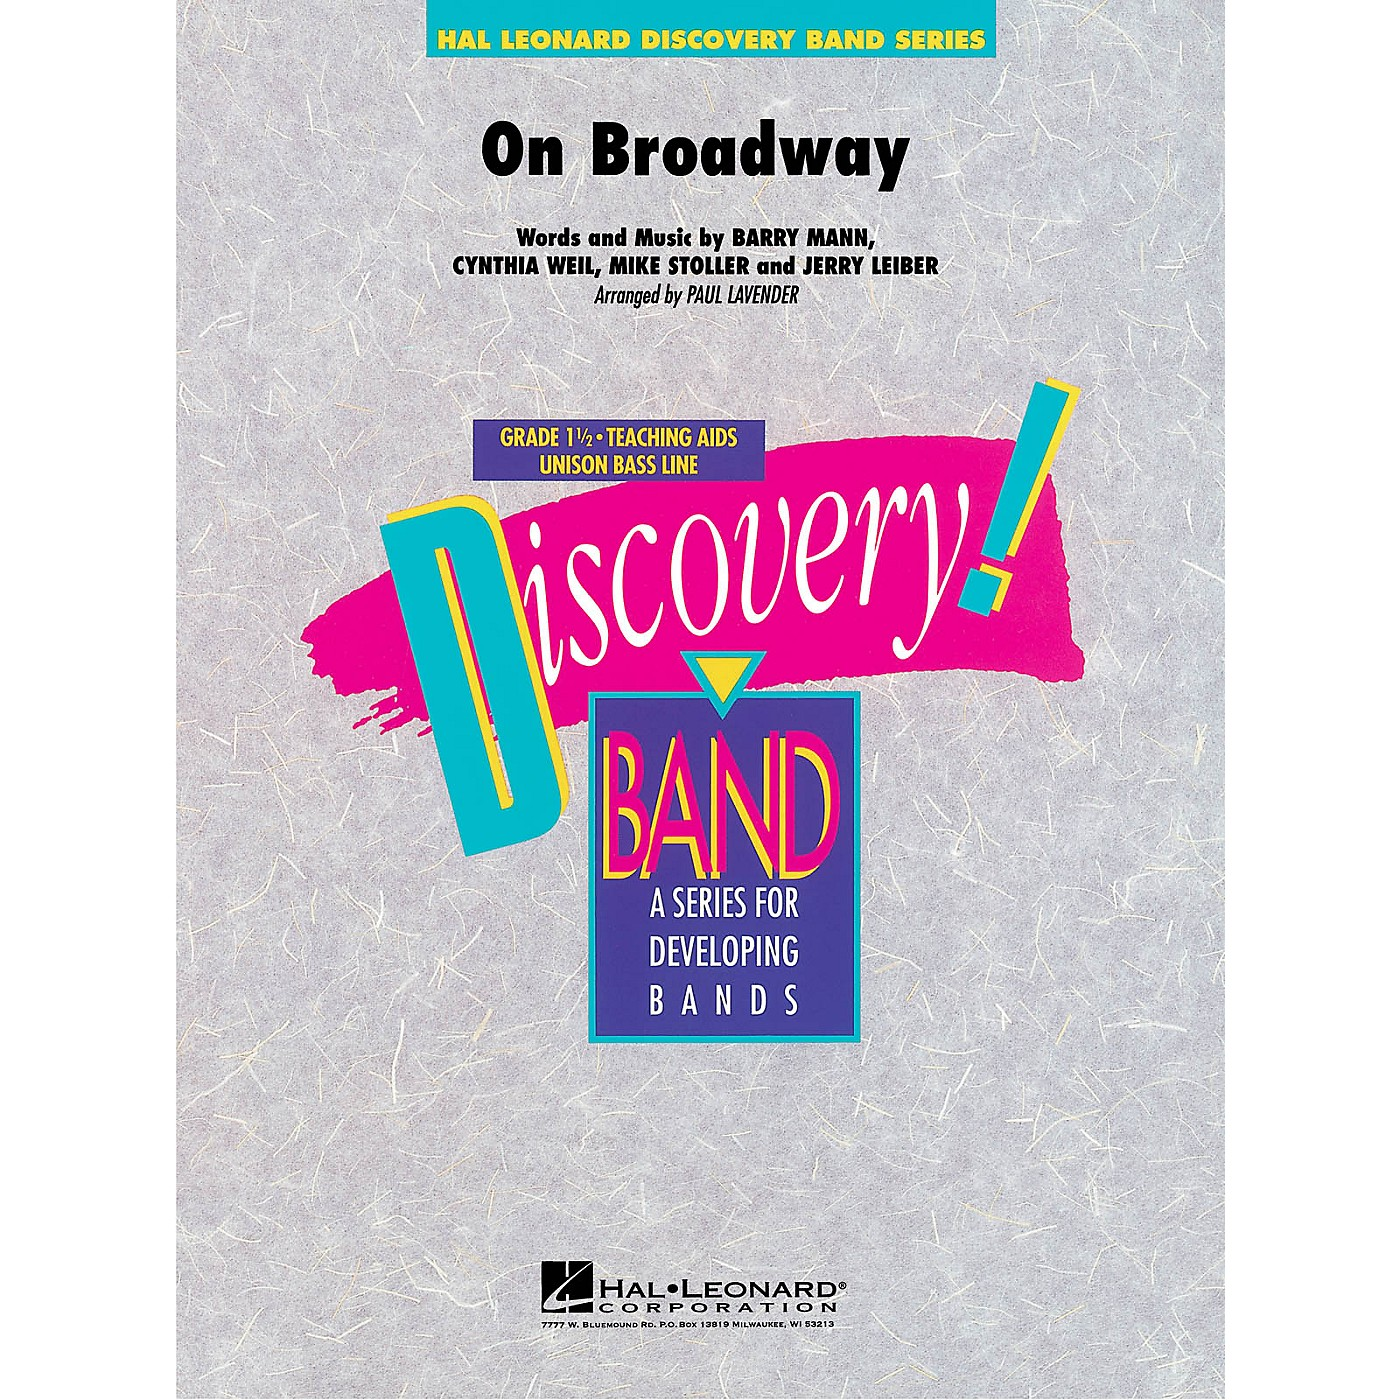 Hal Leonard On Broadway Concert Band Level 1.5 by George Benson Arranged by Paul Lavender thumbnail